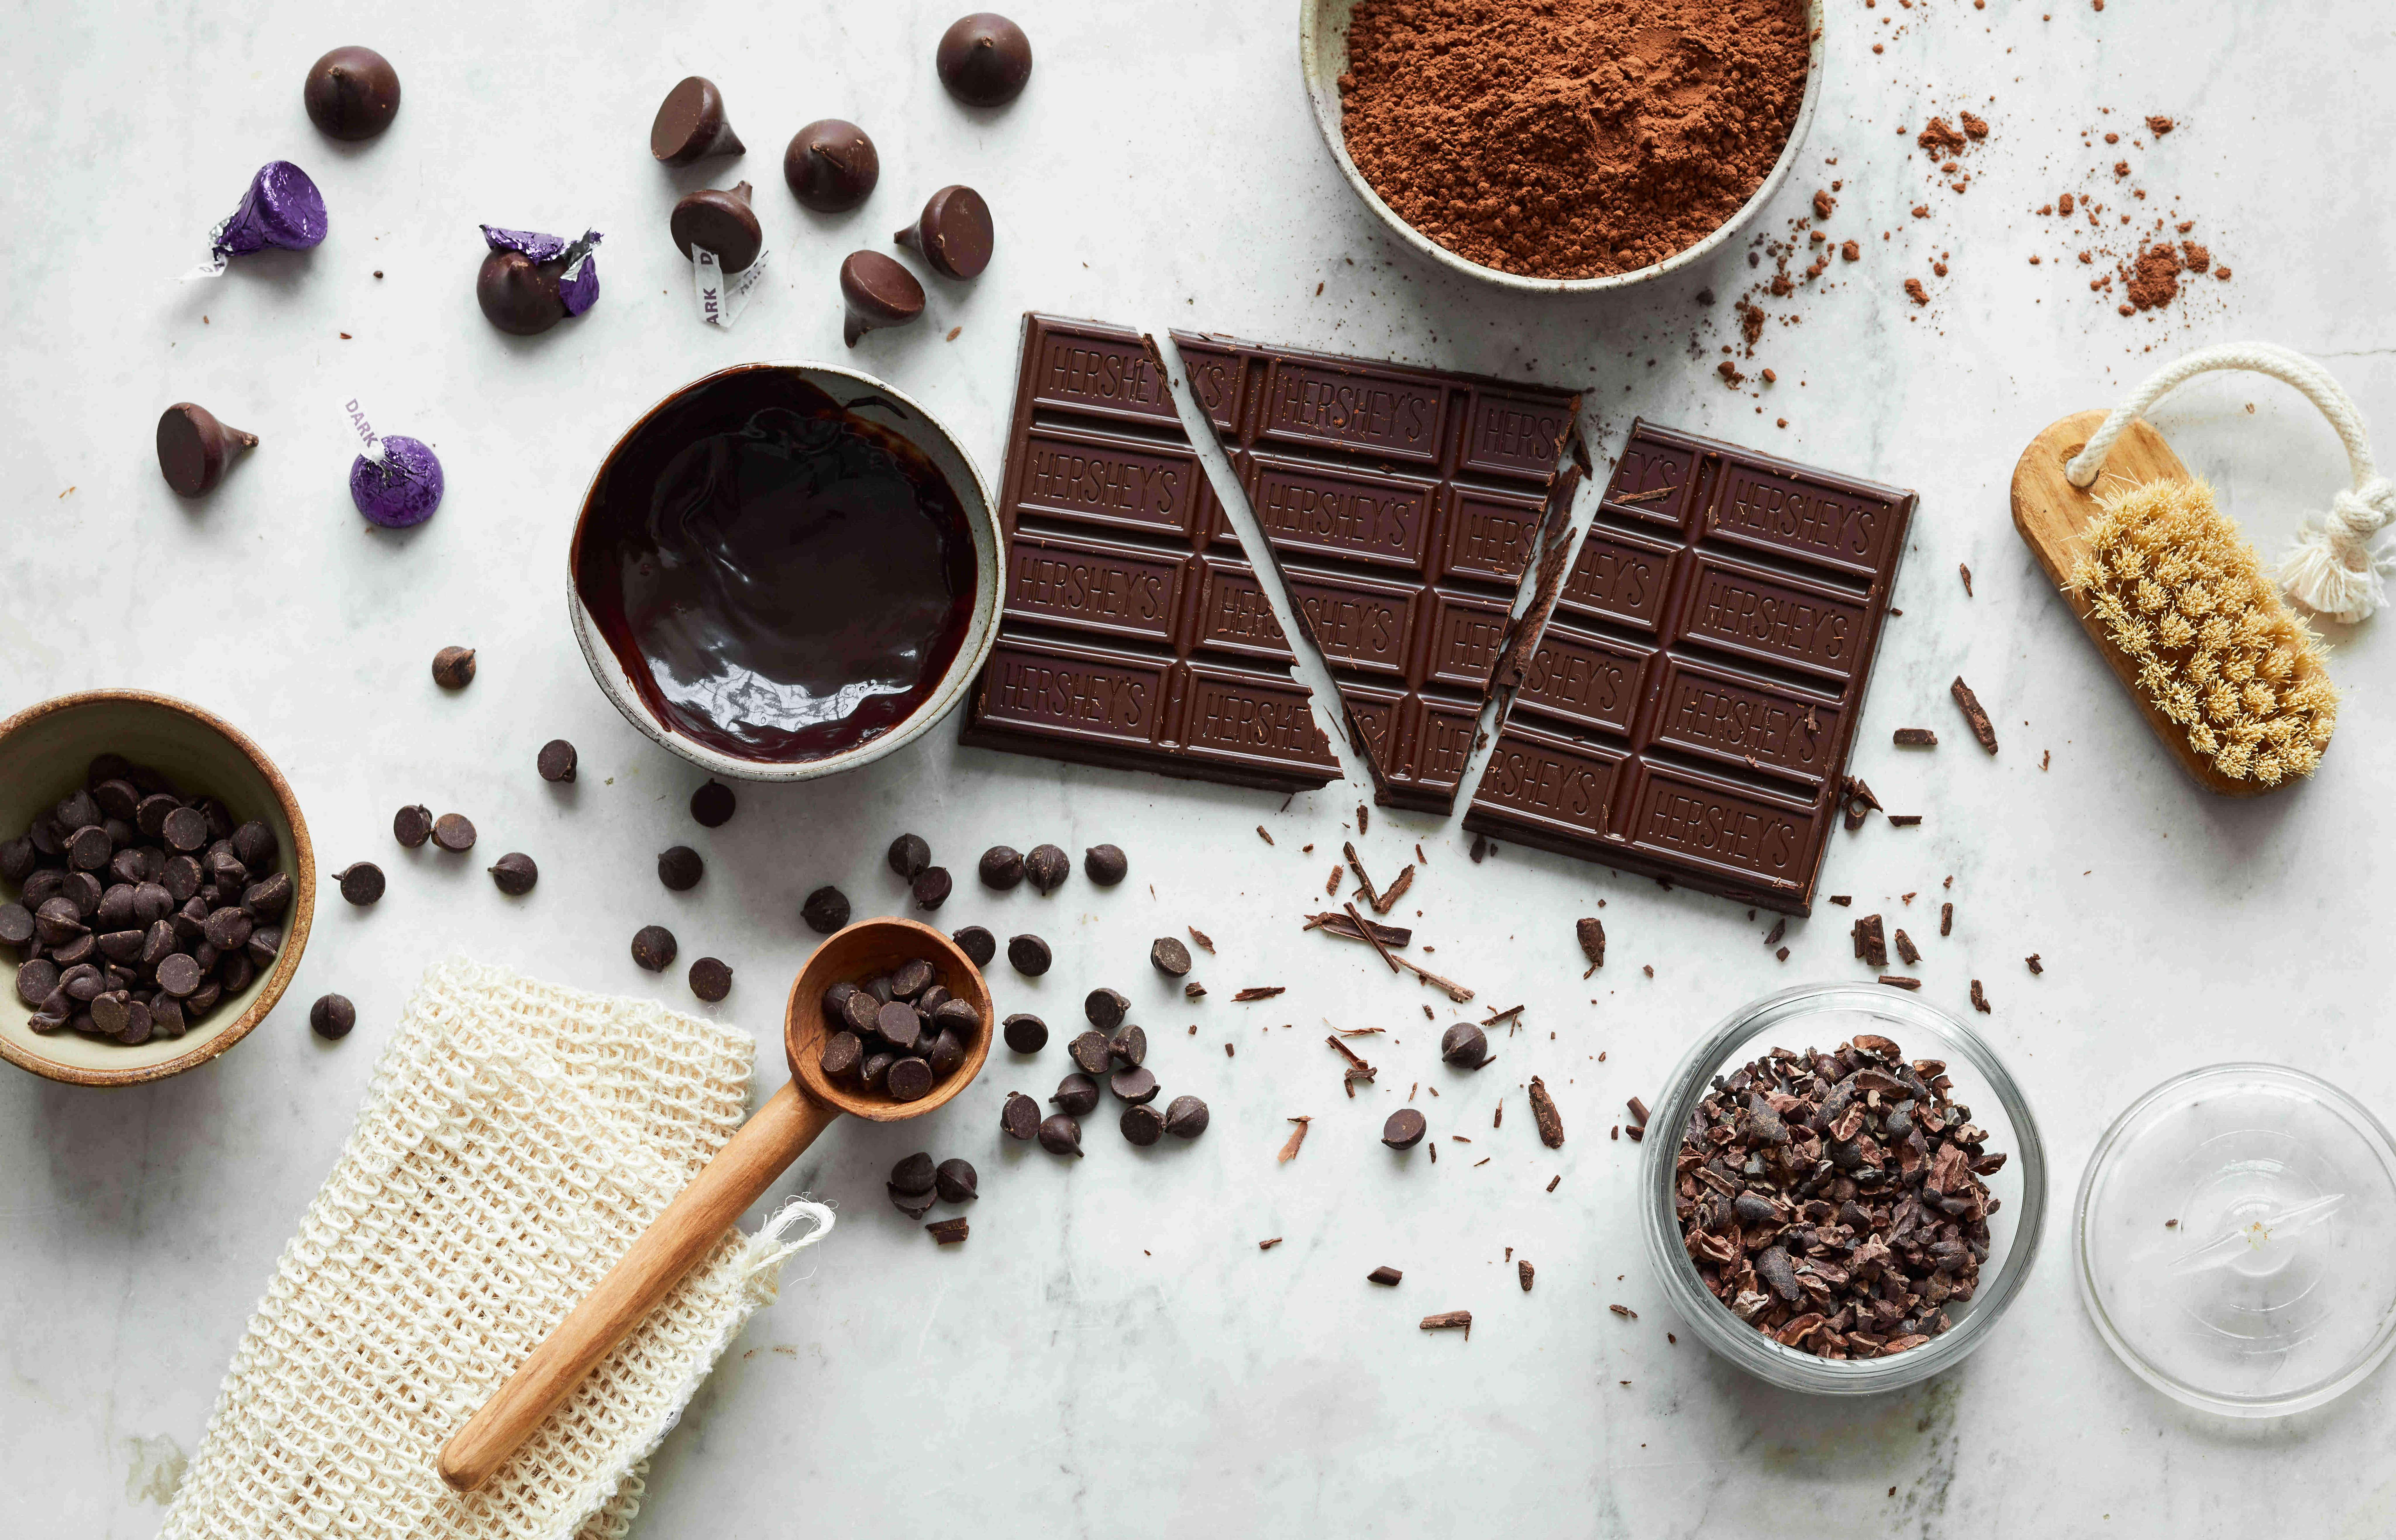 A chocolate spa is opening in 'The Sweetest Place on Earth' at the home of the Hershey bar